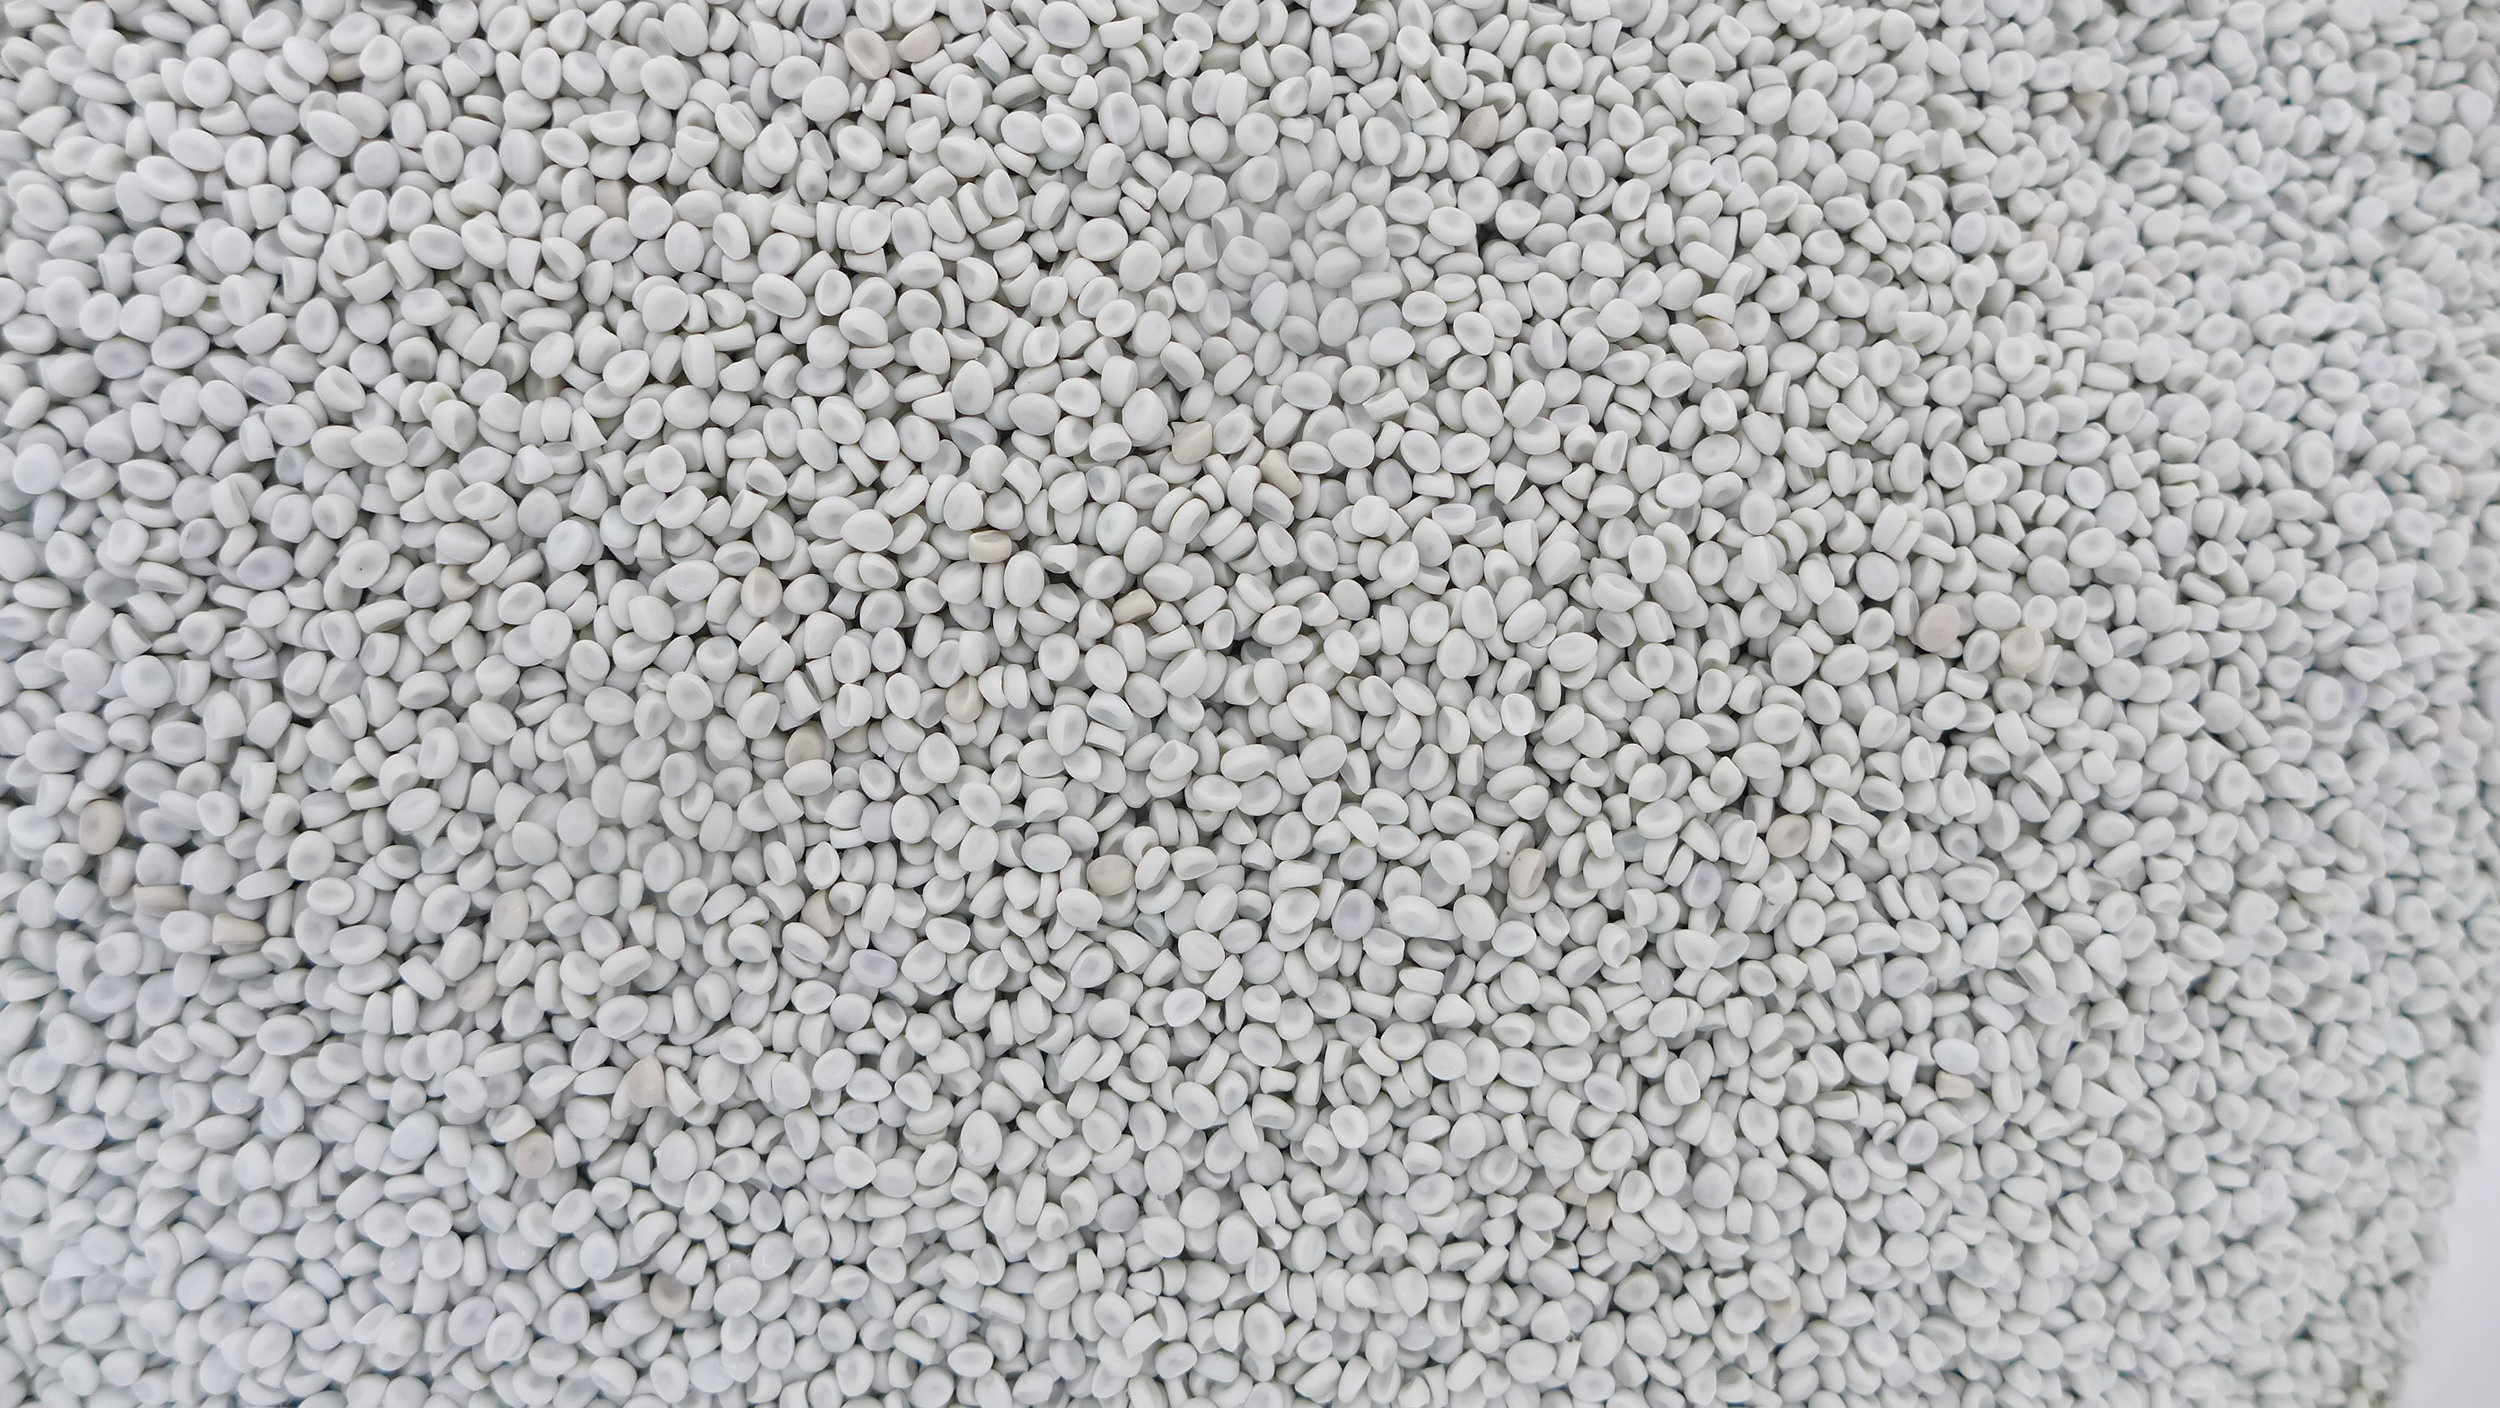 Granulate Light grey HDPE (2).JPG